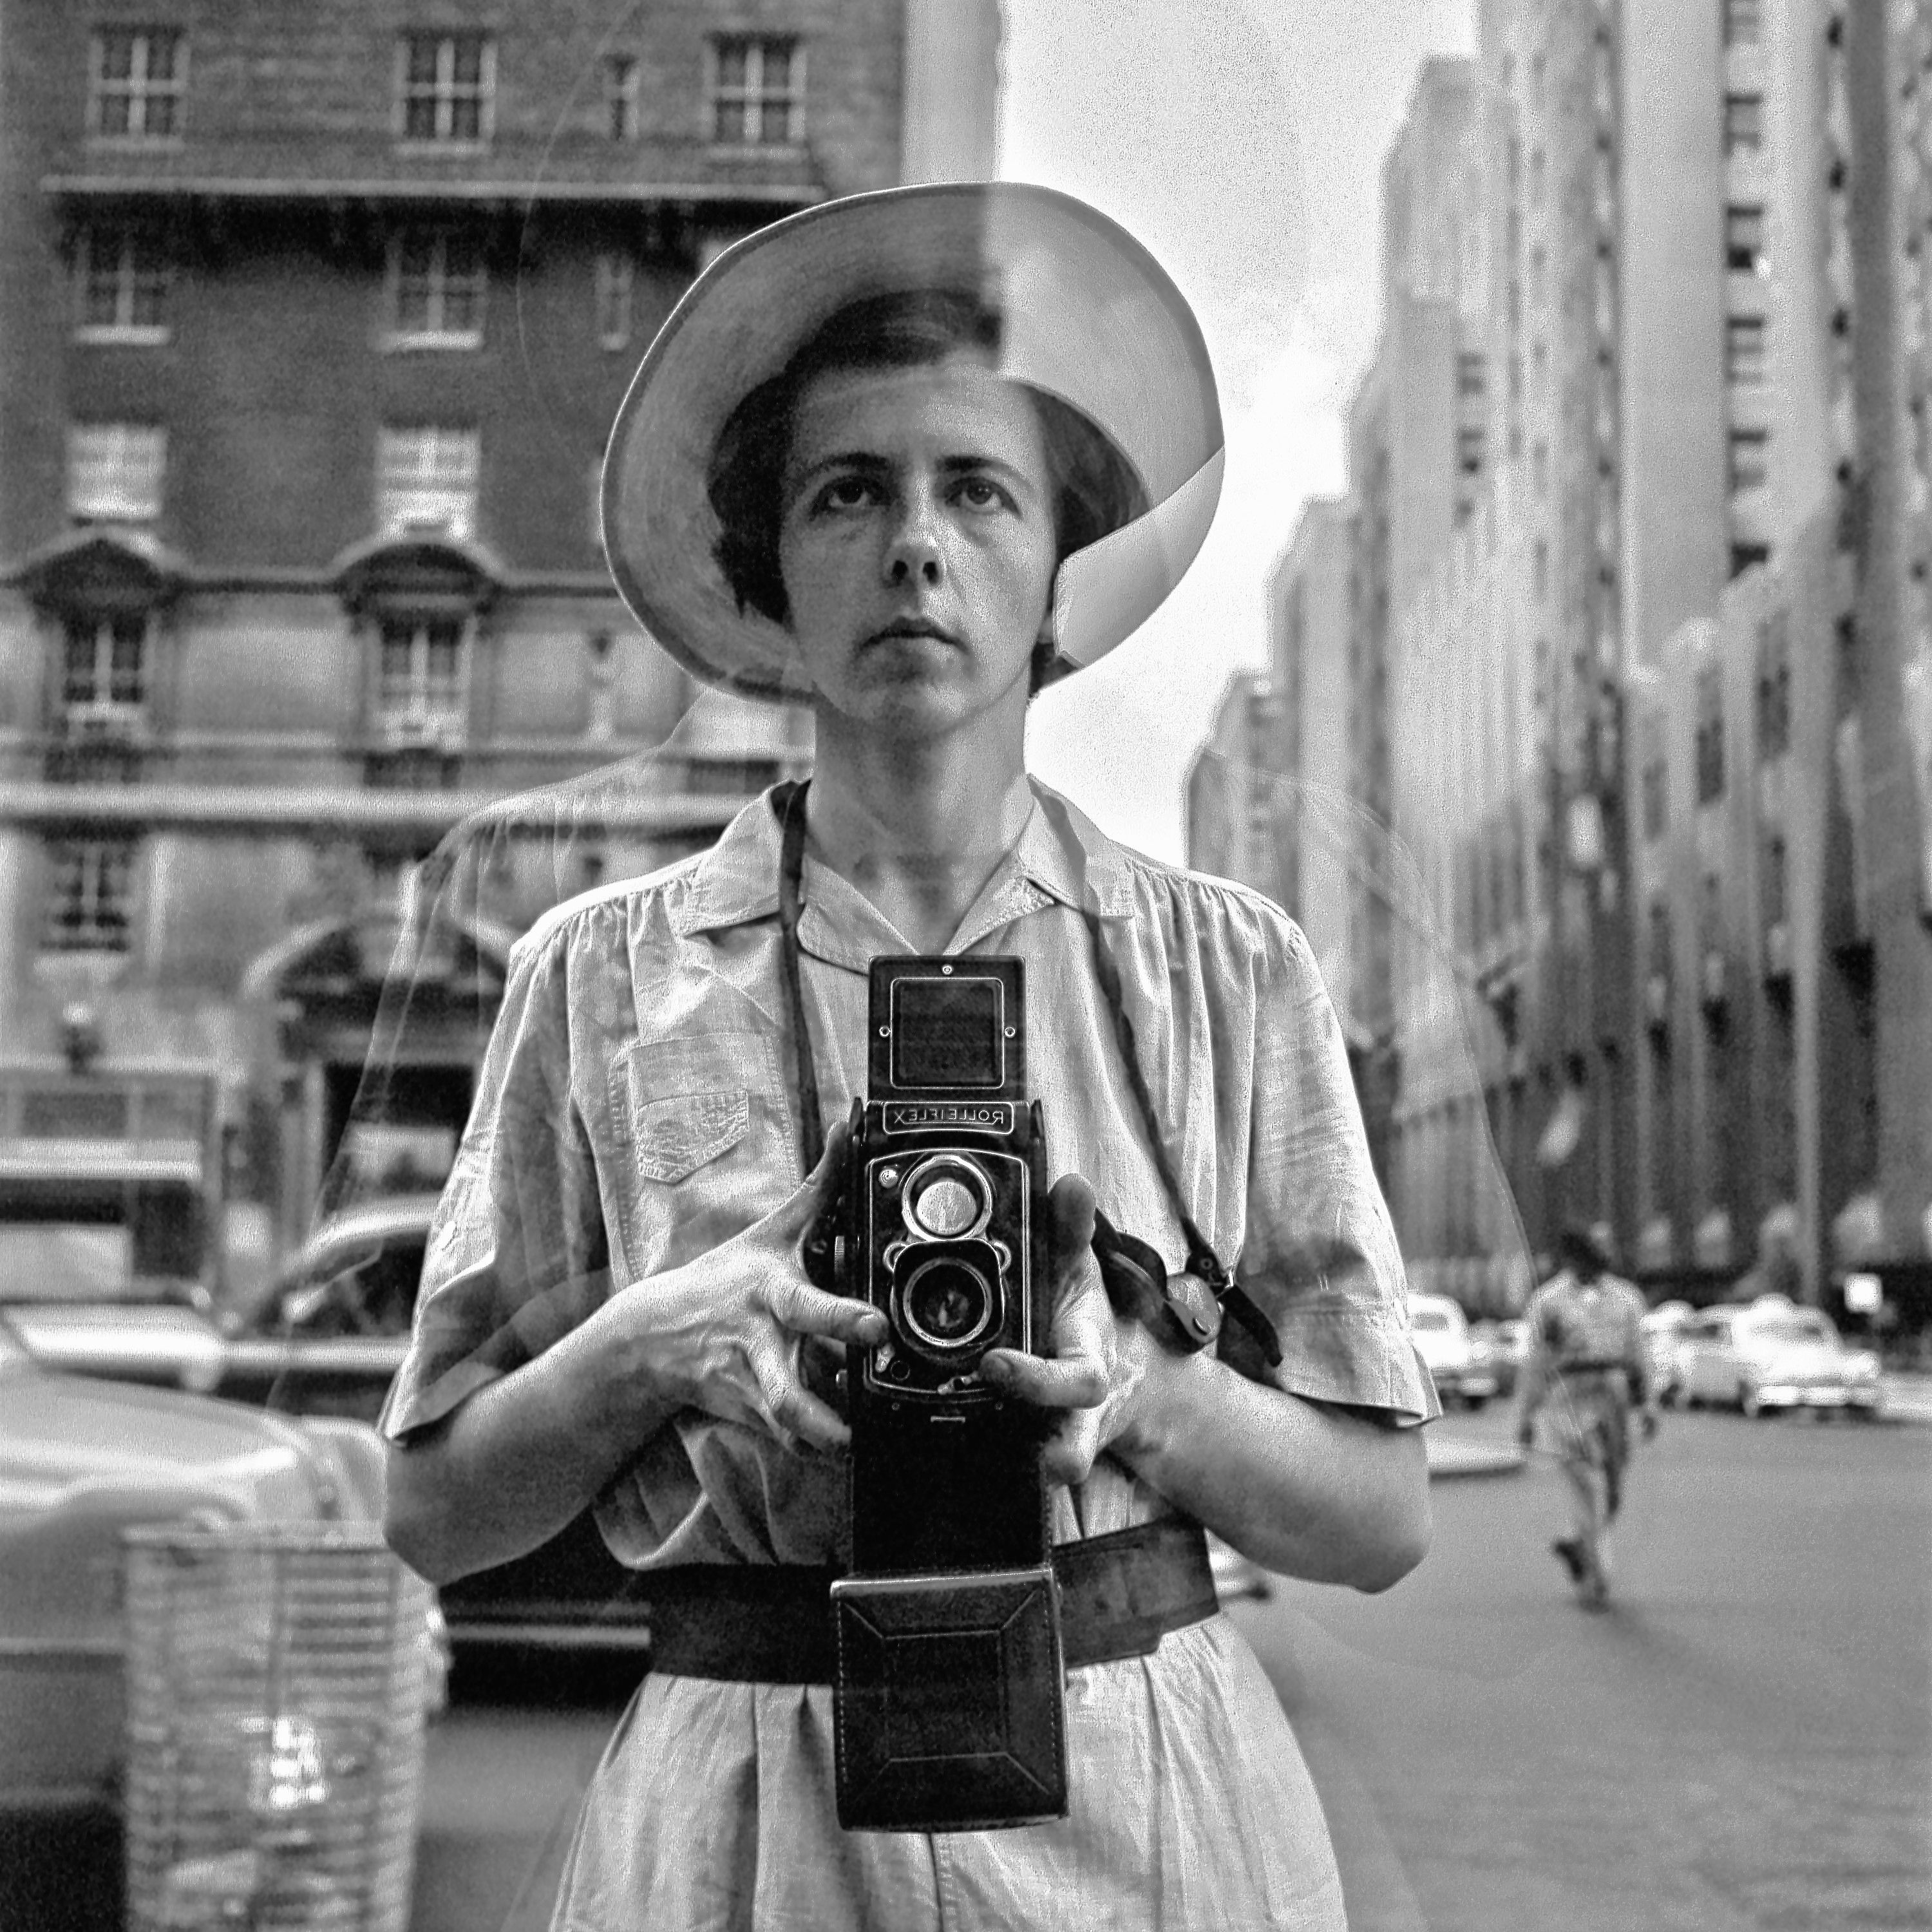 Cinemadope: The Nanny's Gaze, discovering the secret world of little known Chicago street photog Vivian Maier